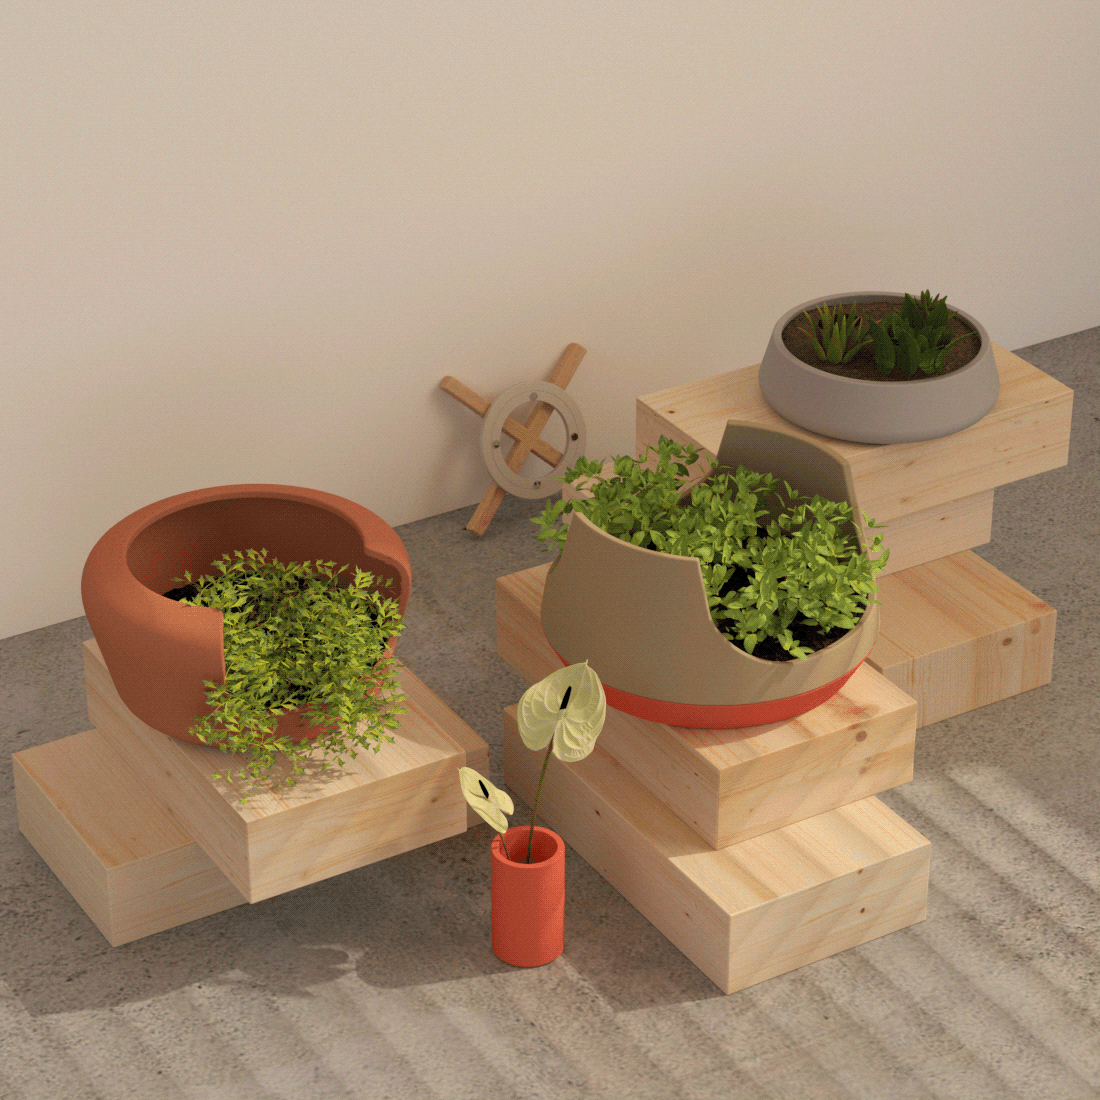 Optimize the space inside the house for different plants in a singular modular system